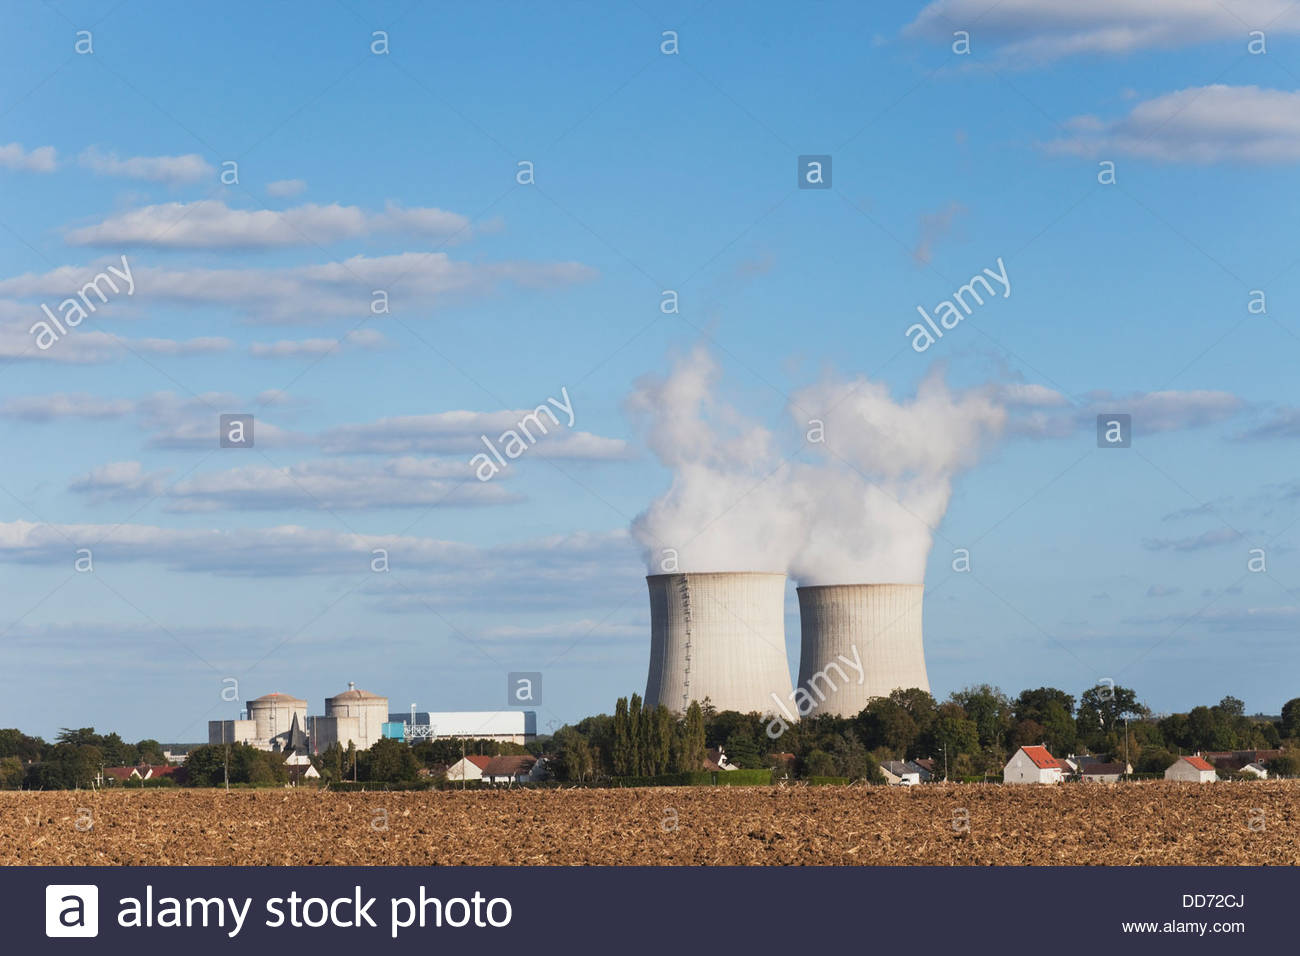 France, View of Nuclear Power Plant - Stock Image